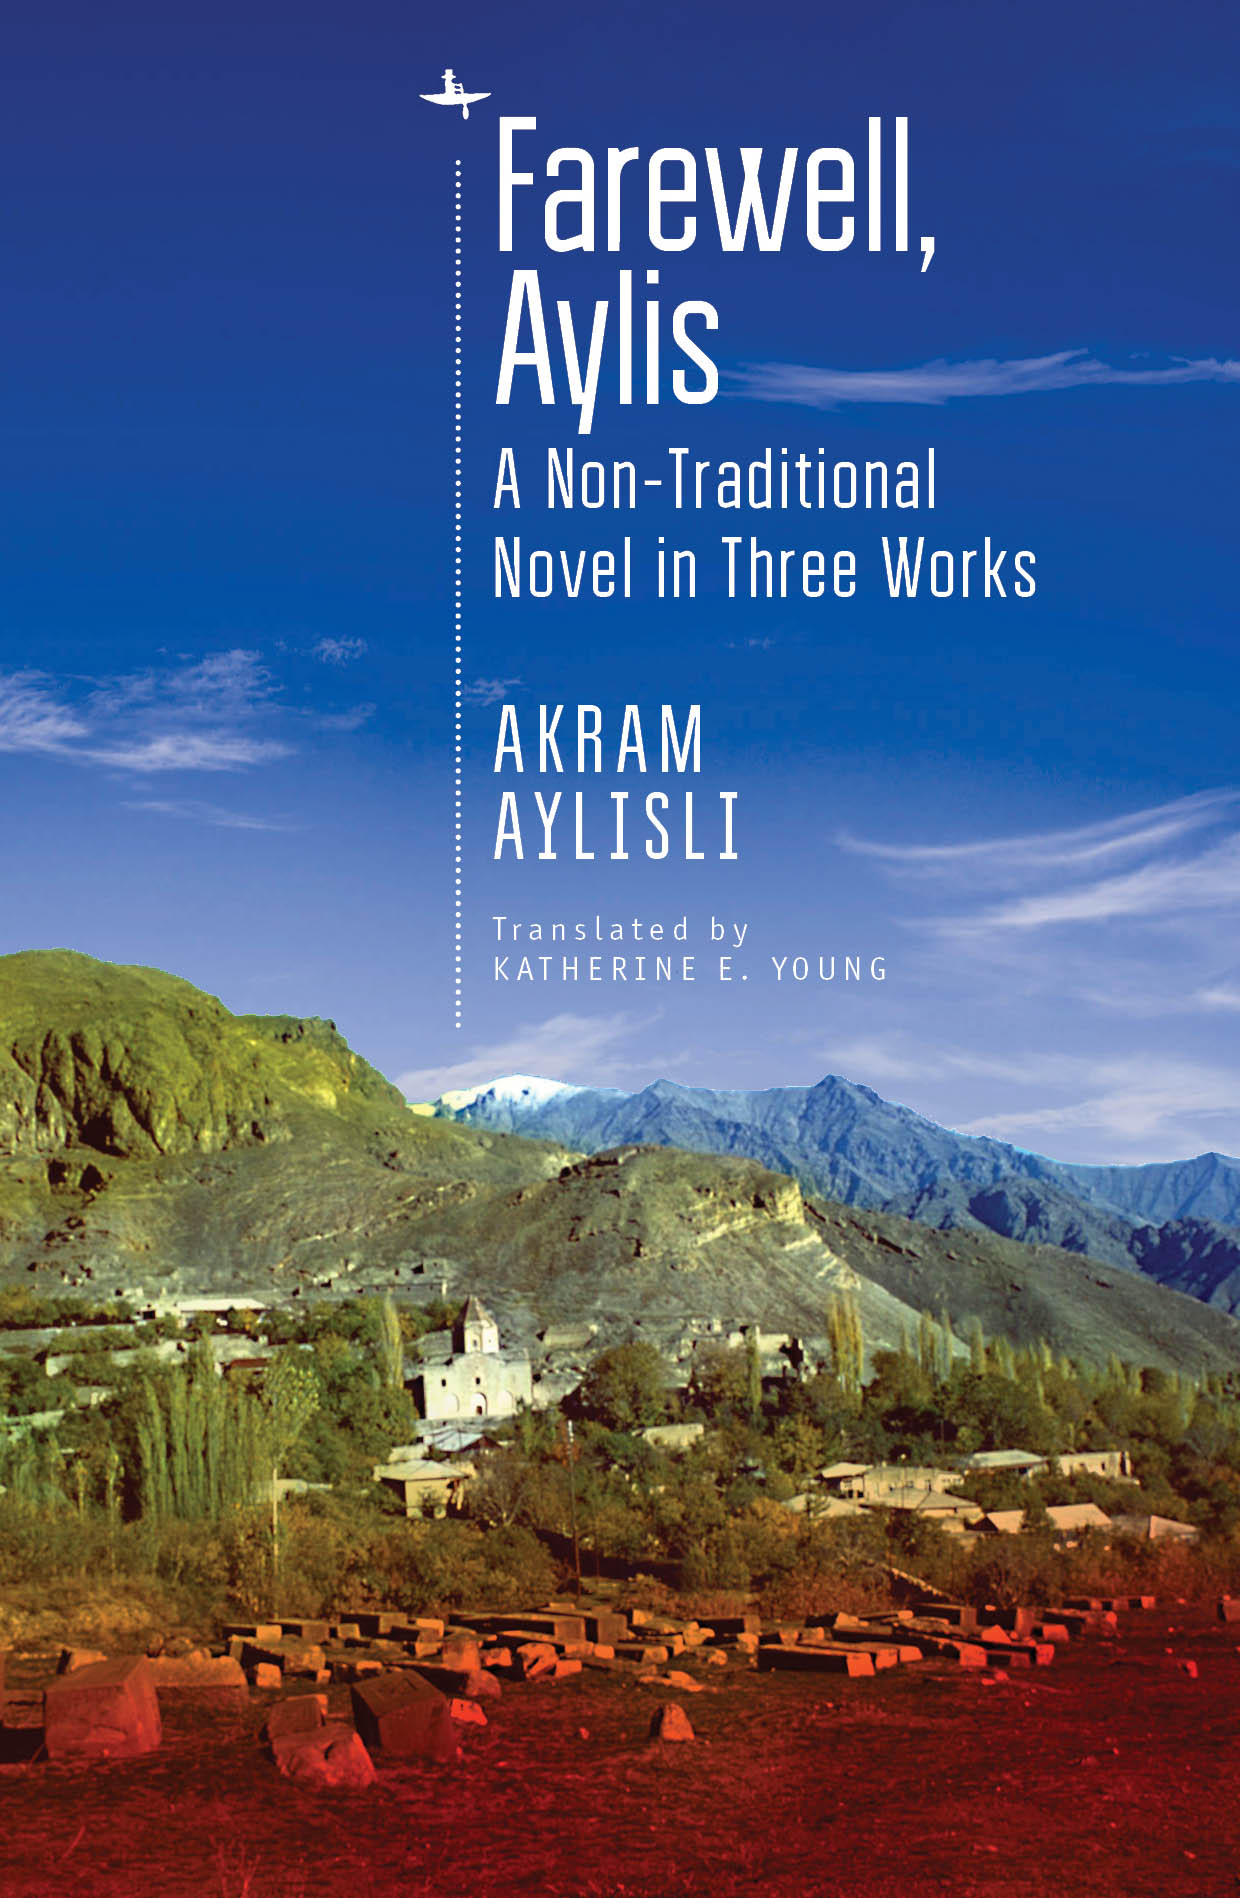 Farewell, Aylis: A Non-Traditional Novel in Three Works        by Akram Aylisli, translated from the Russian by Katherine E. Young